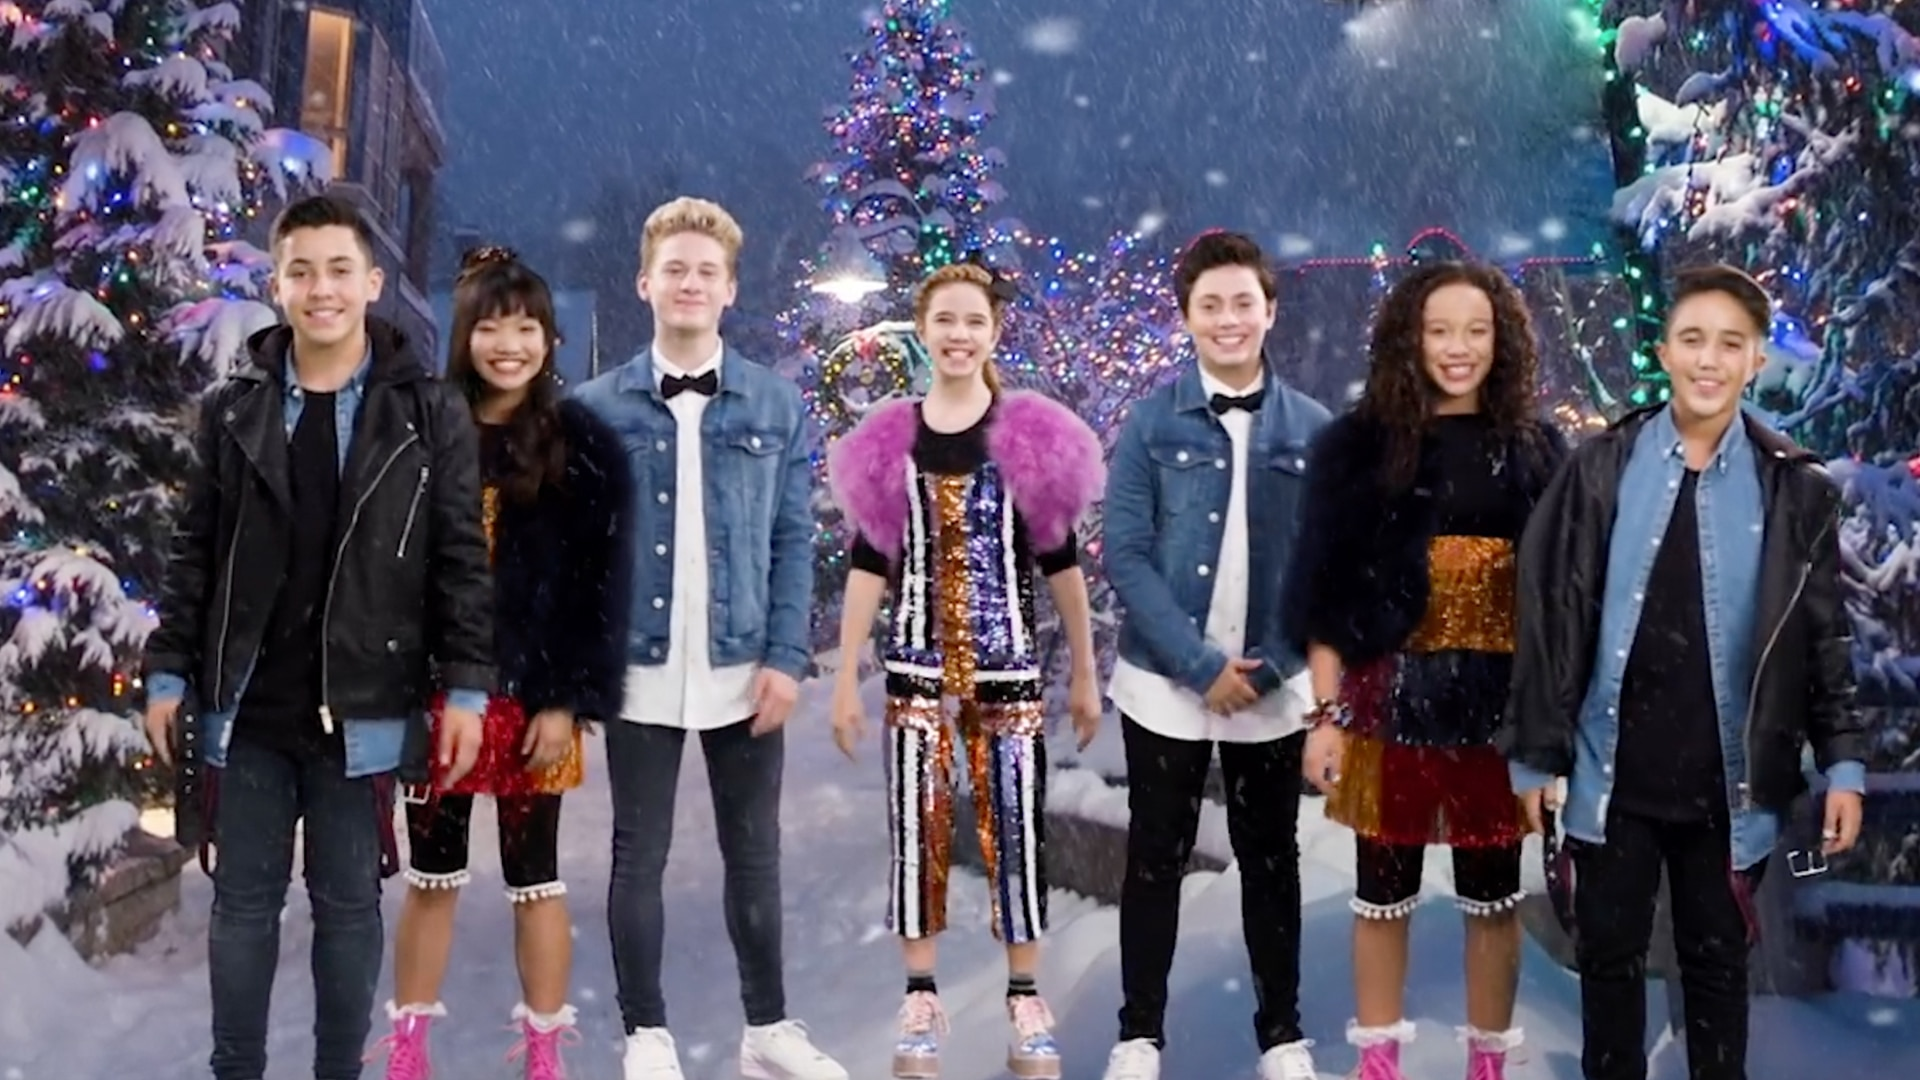 Kidz Bop Kids - Have Yourself A Merry Little Christmas